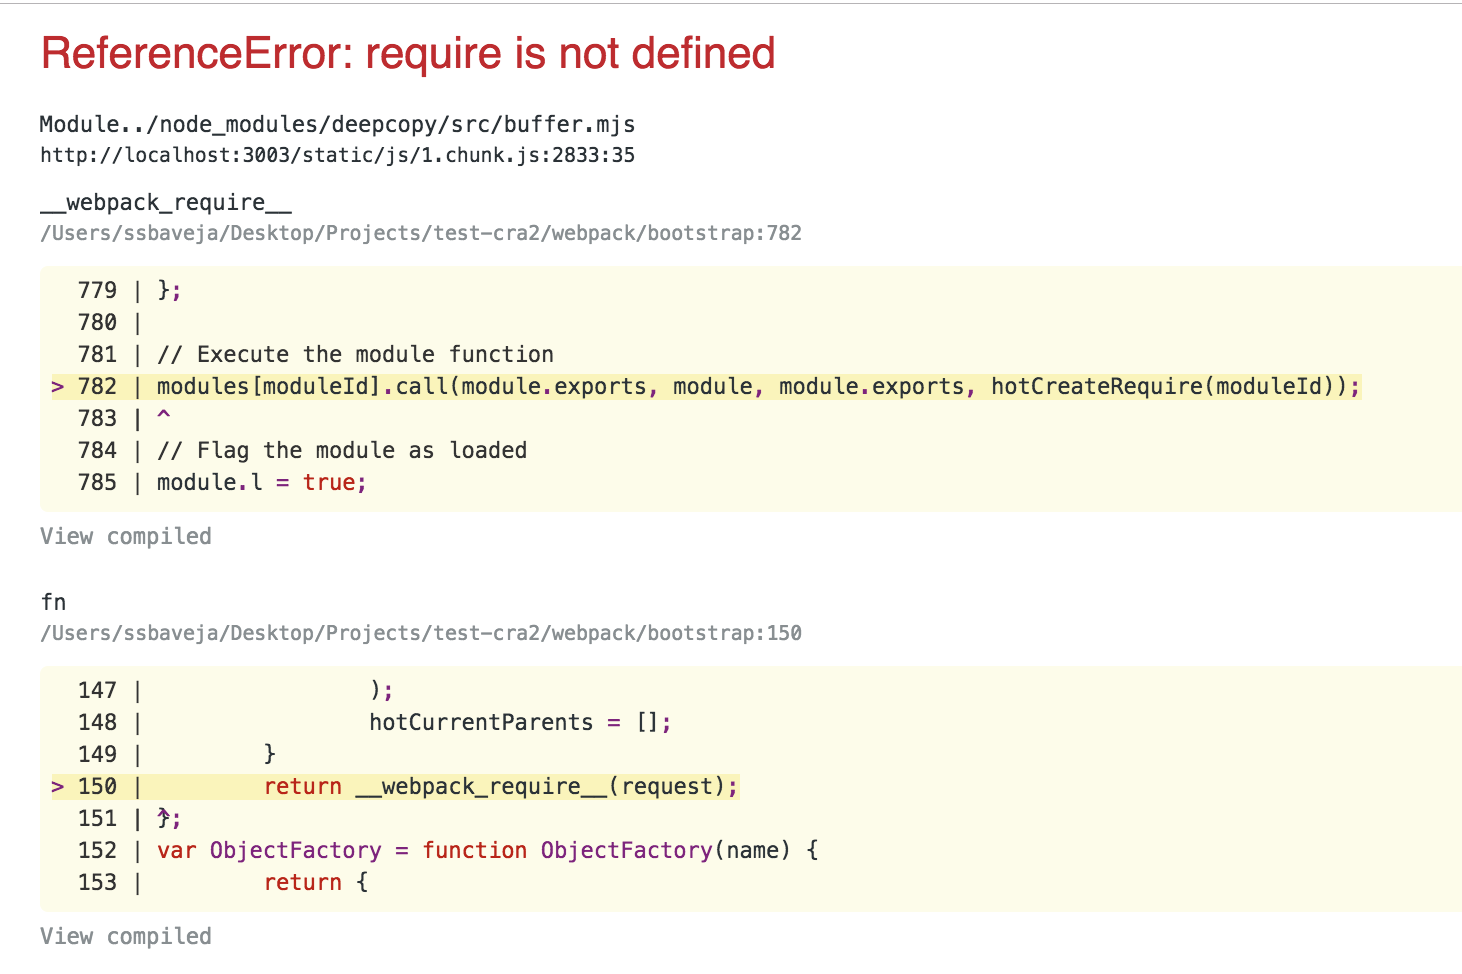 ReferenceError: require is not defined (create-react-app v2 0